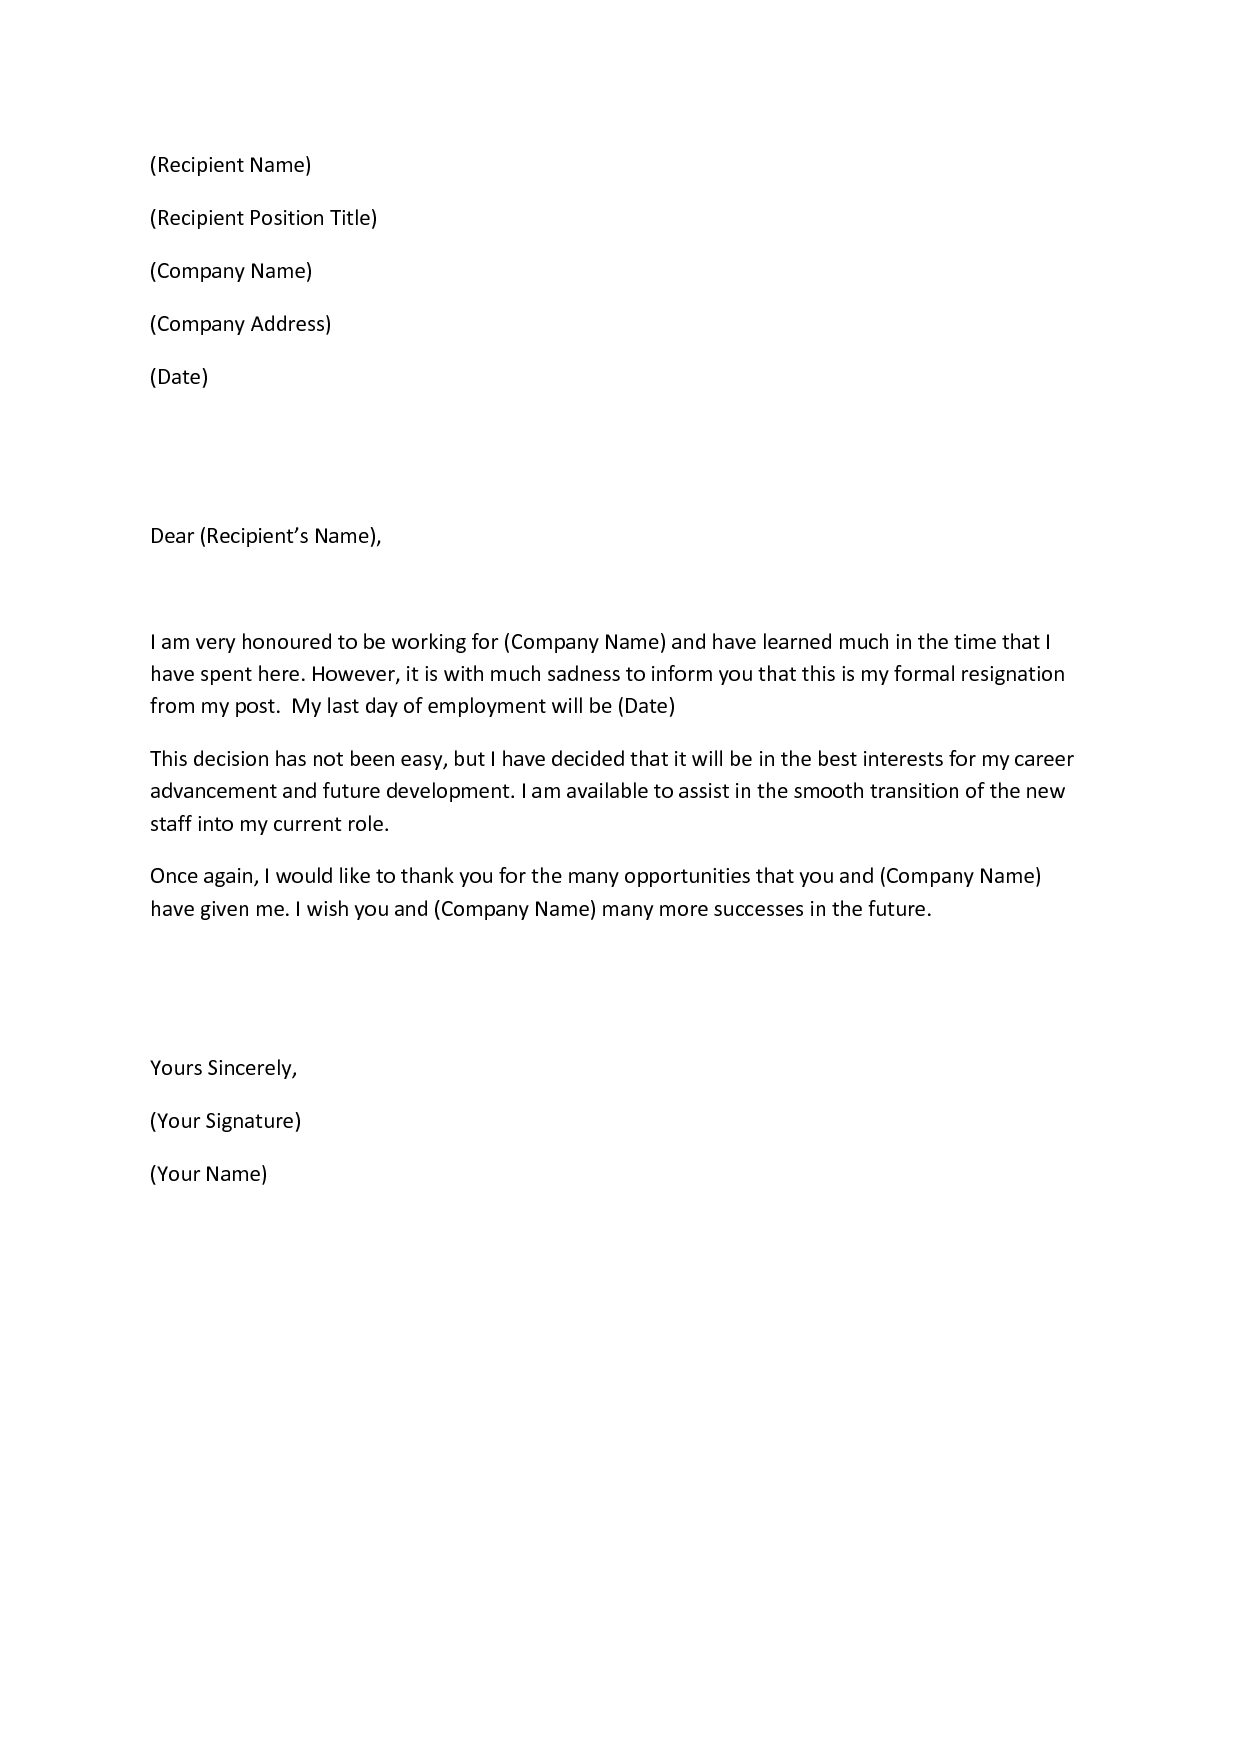 sample letter resignation get doc rkvb template kevinkan resignation letter template sample employee sample careers here resignation letter quitting job - How To Start A Cover Letter For A Job